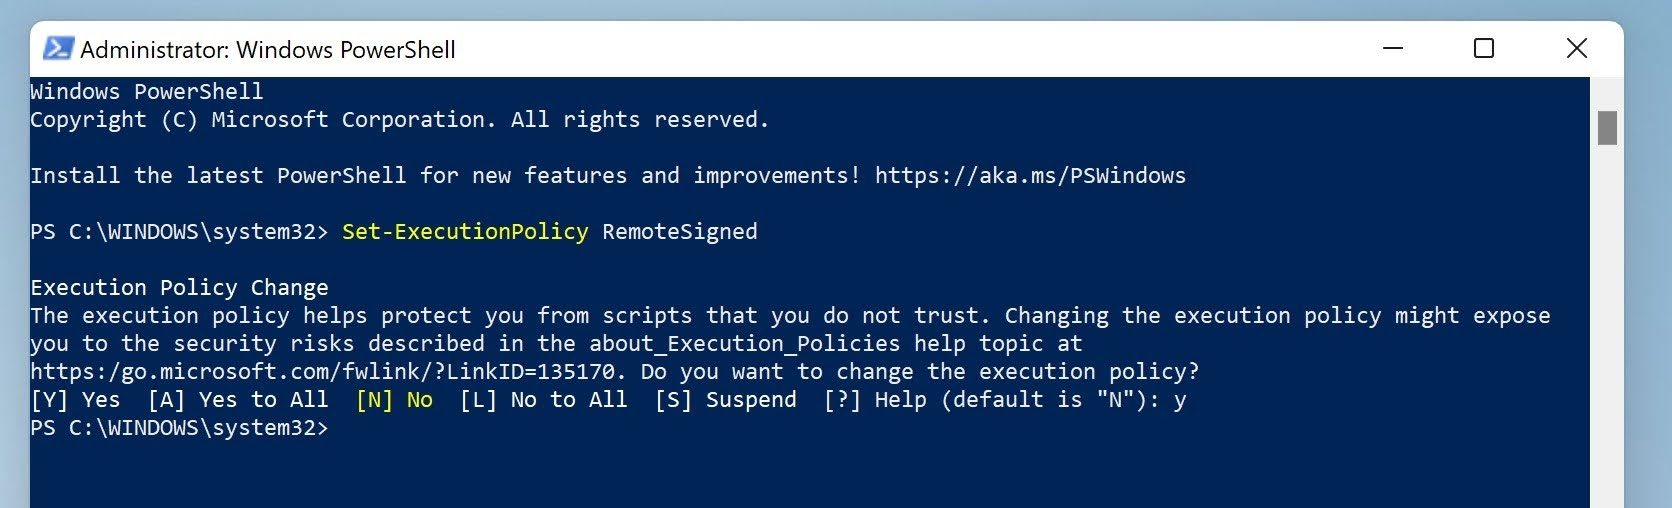 Type y and press on Enter when the PowerShell ask: Do you want to change the execution policy.